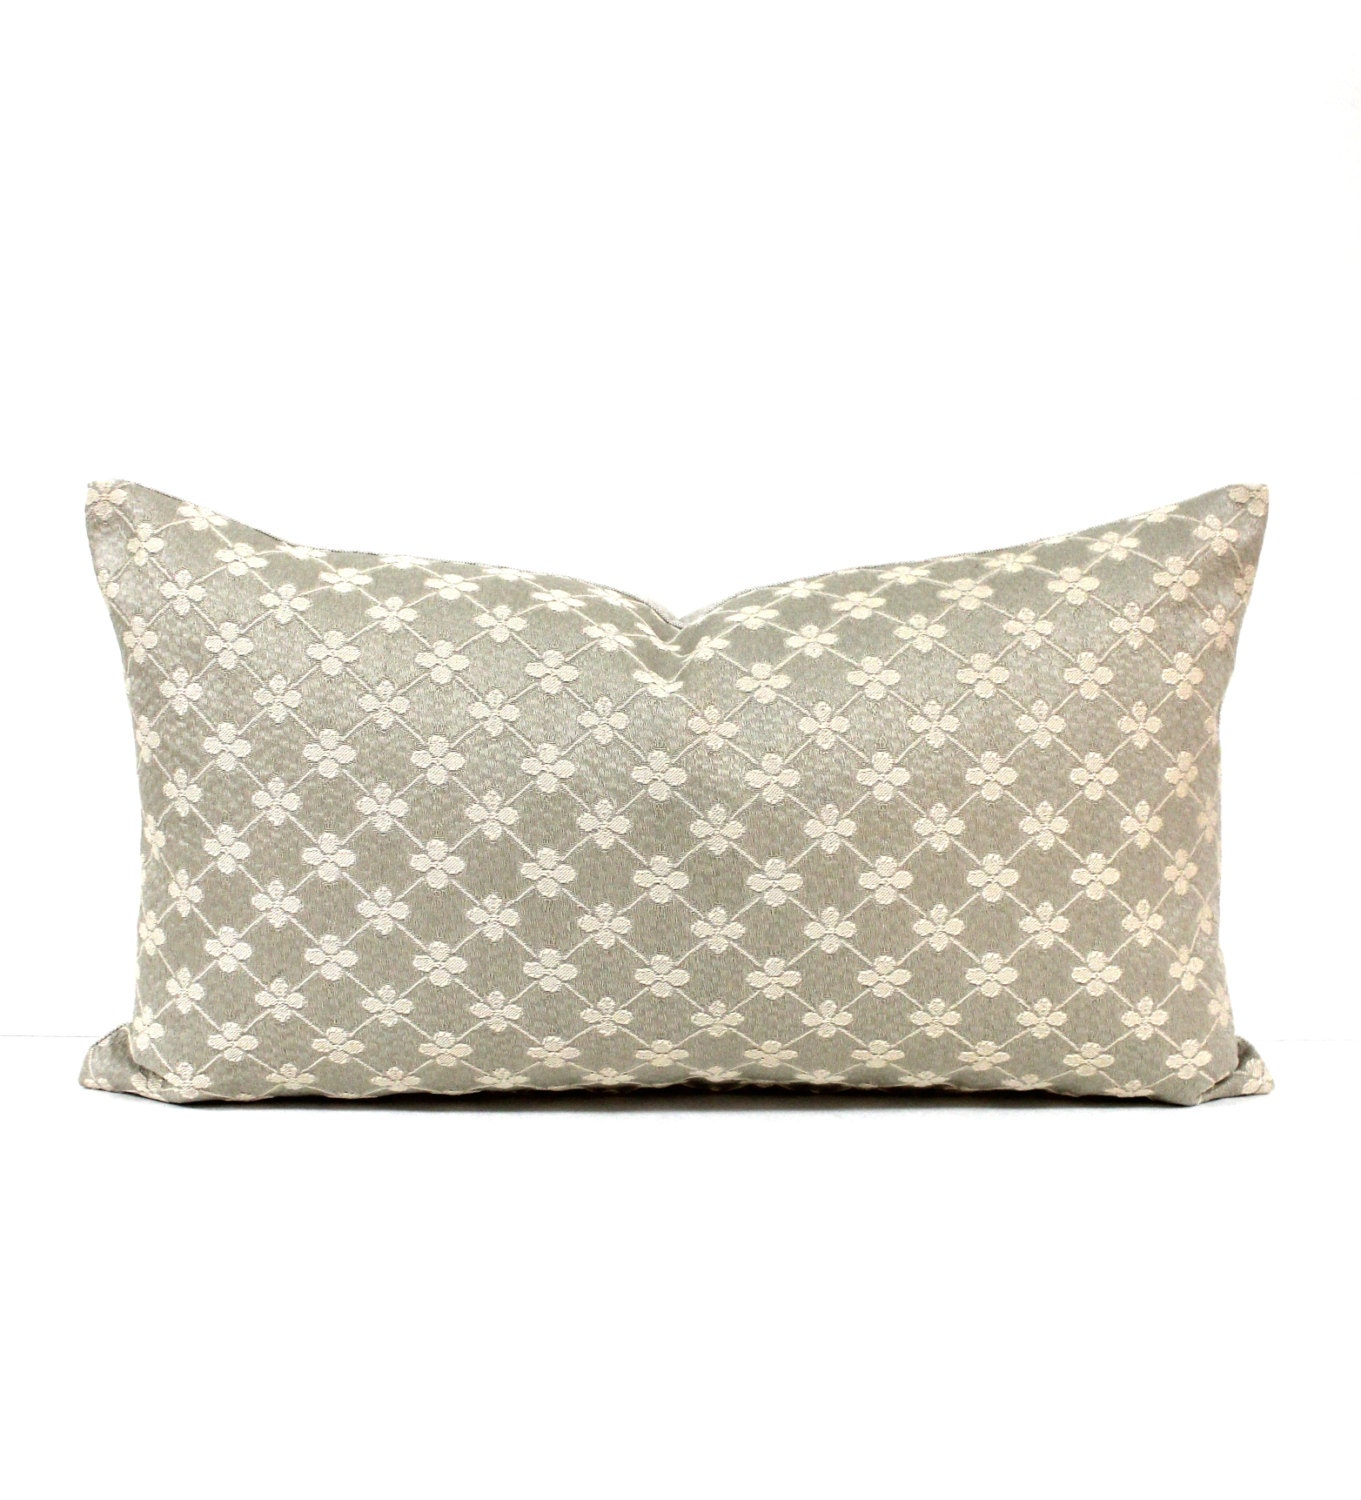 Lumbar Pillow Cover 10x20 Taupe Beige Decorative by couchdwellers